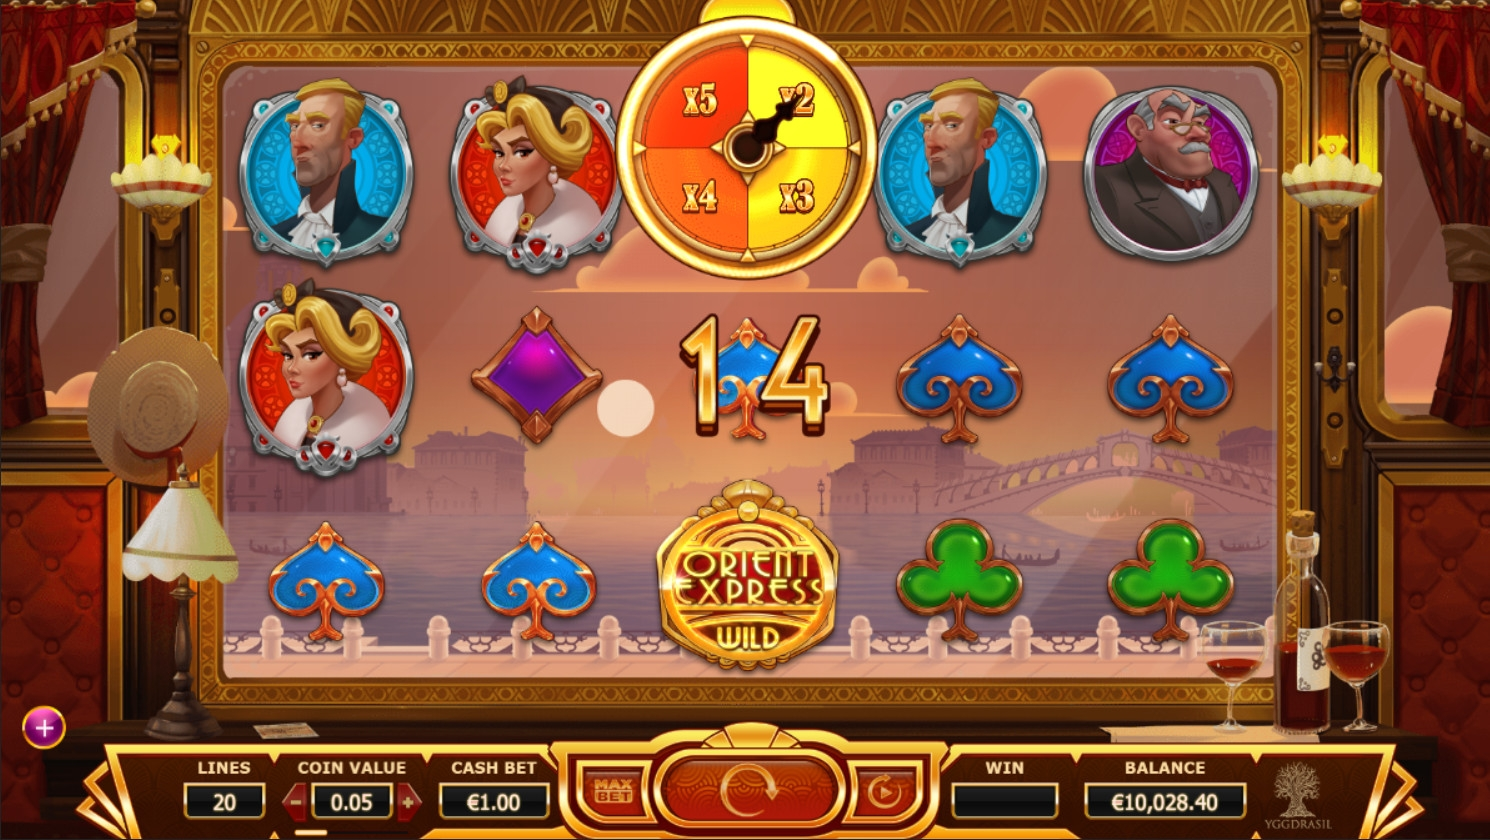 To The Rescue Slot Machine - Review and Free Online Game